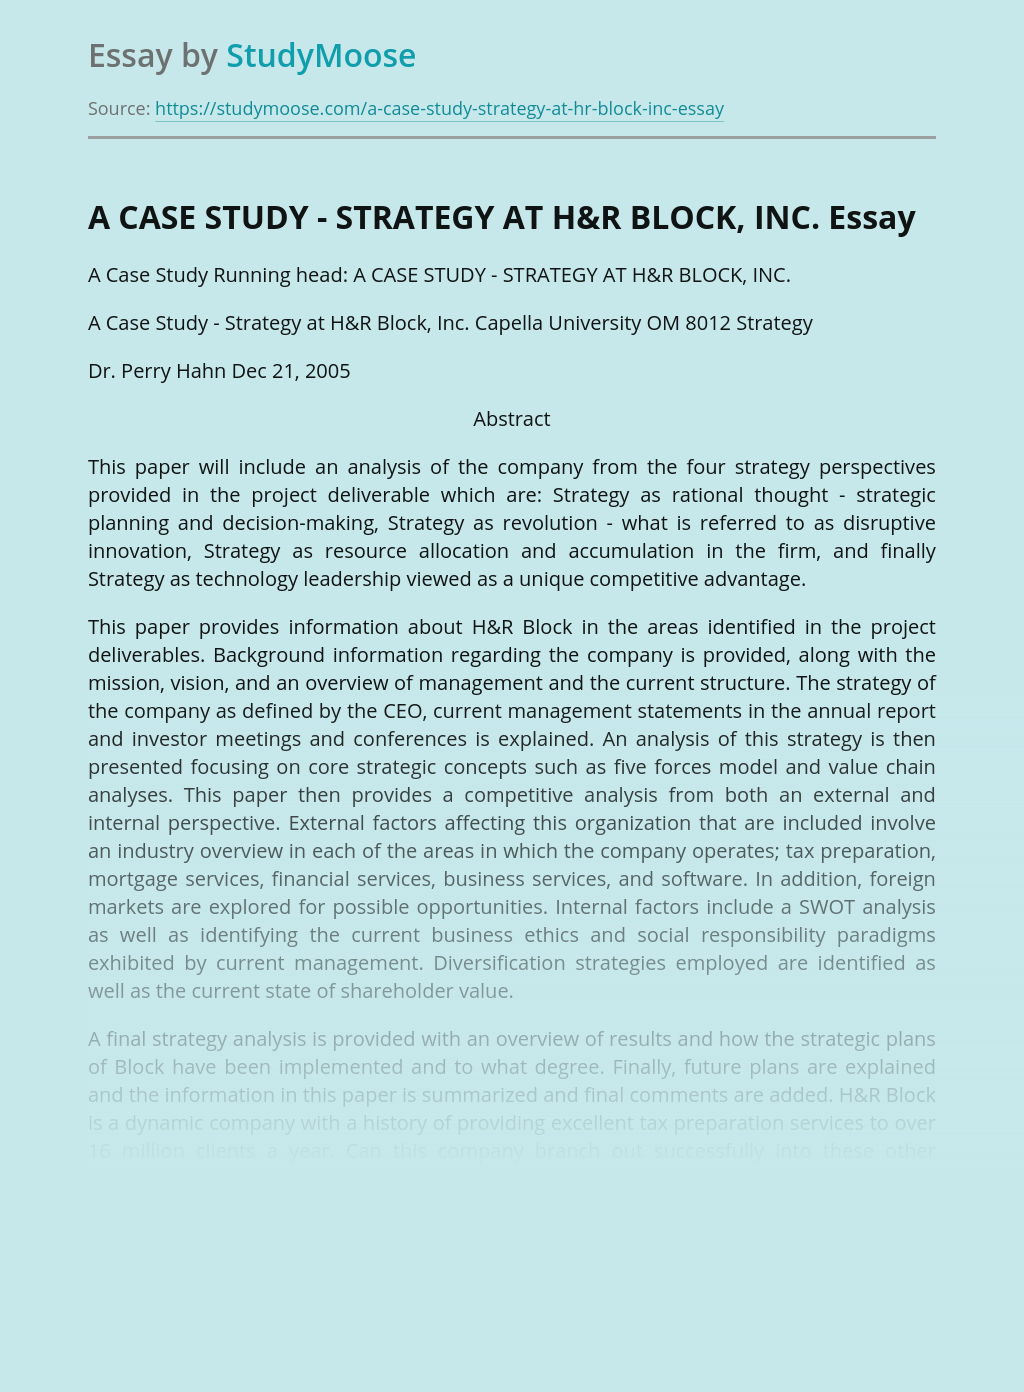 A CASE STUDY - STRATEGY AT H&R BLOCK, INC.